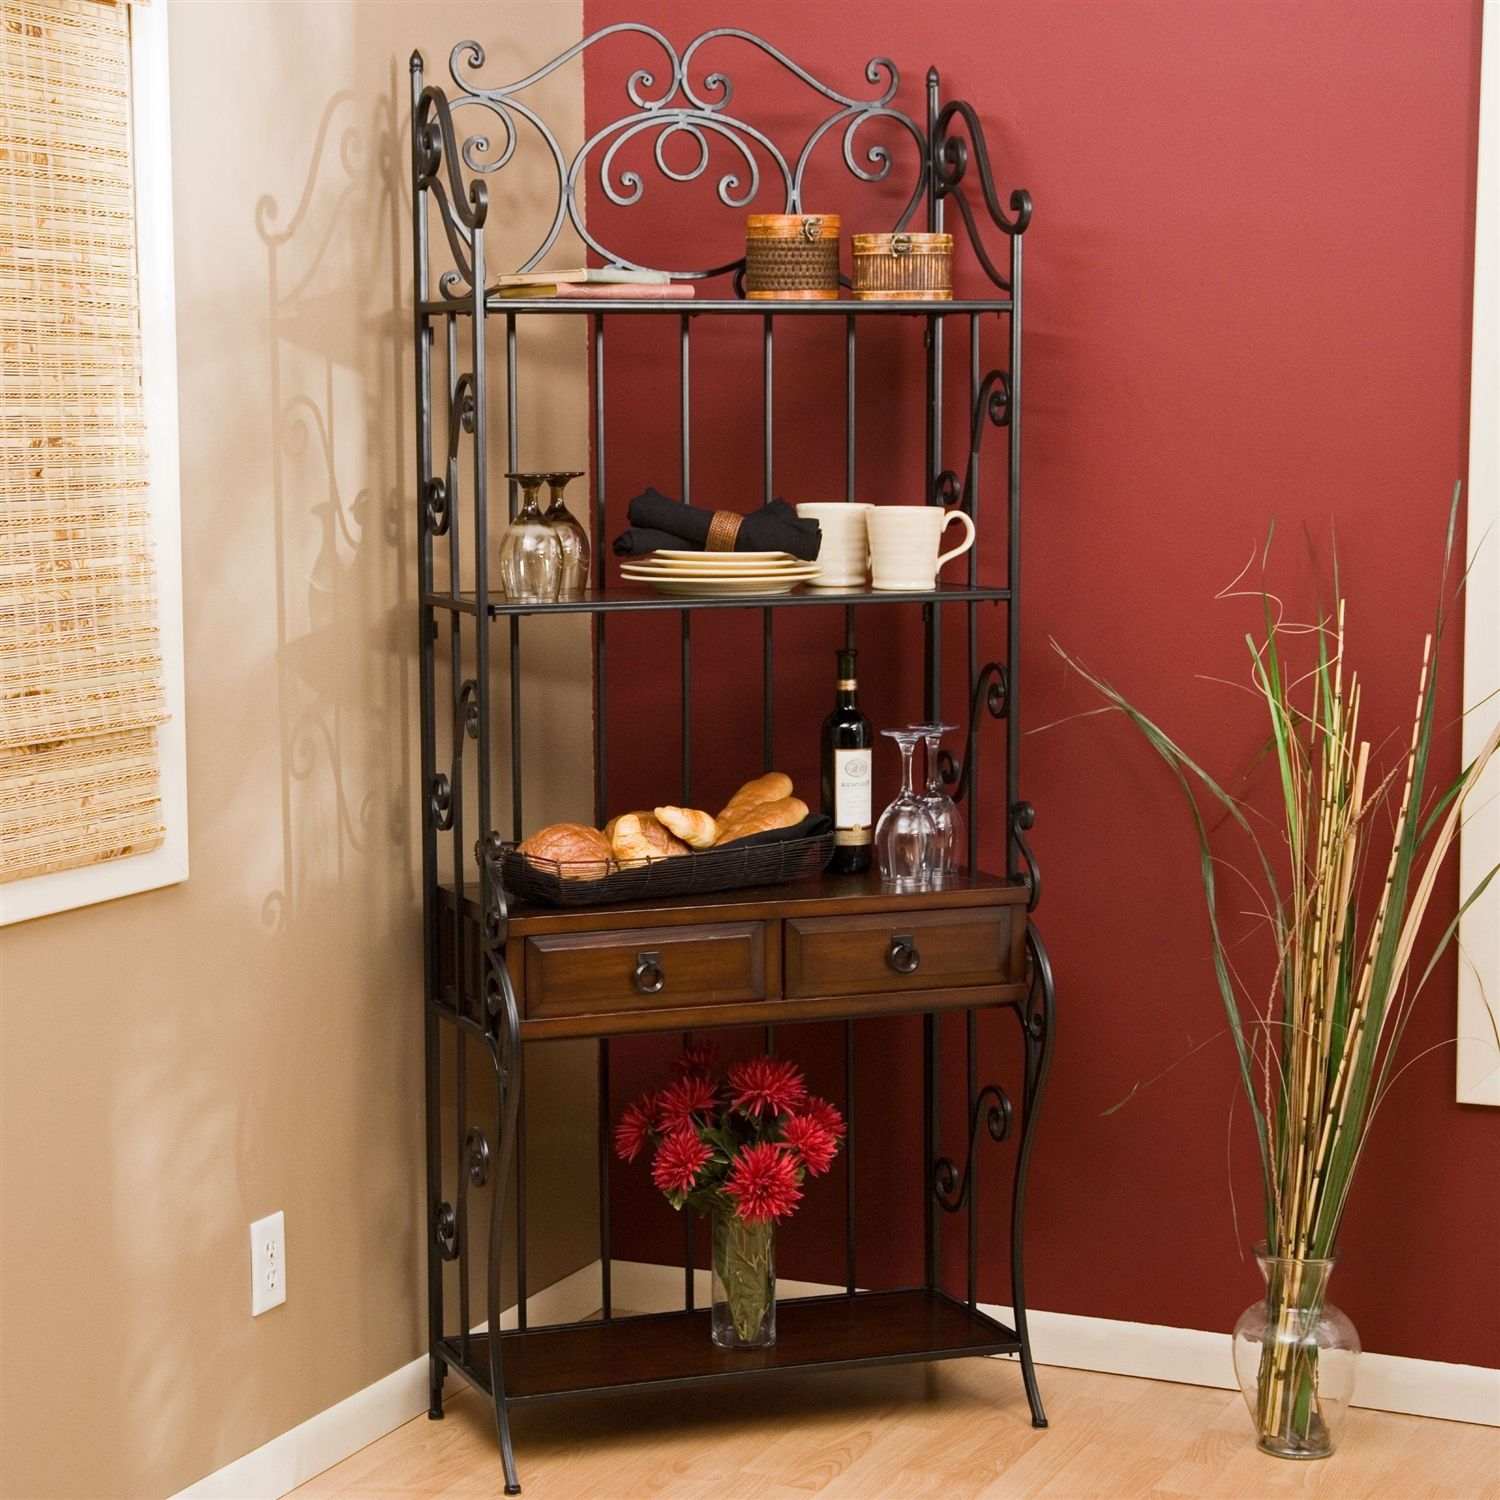 Corner bakers rack with cabinet - Black Wrought Iron And Walnut Wood Finish Bakers Rack